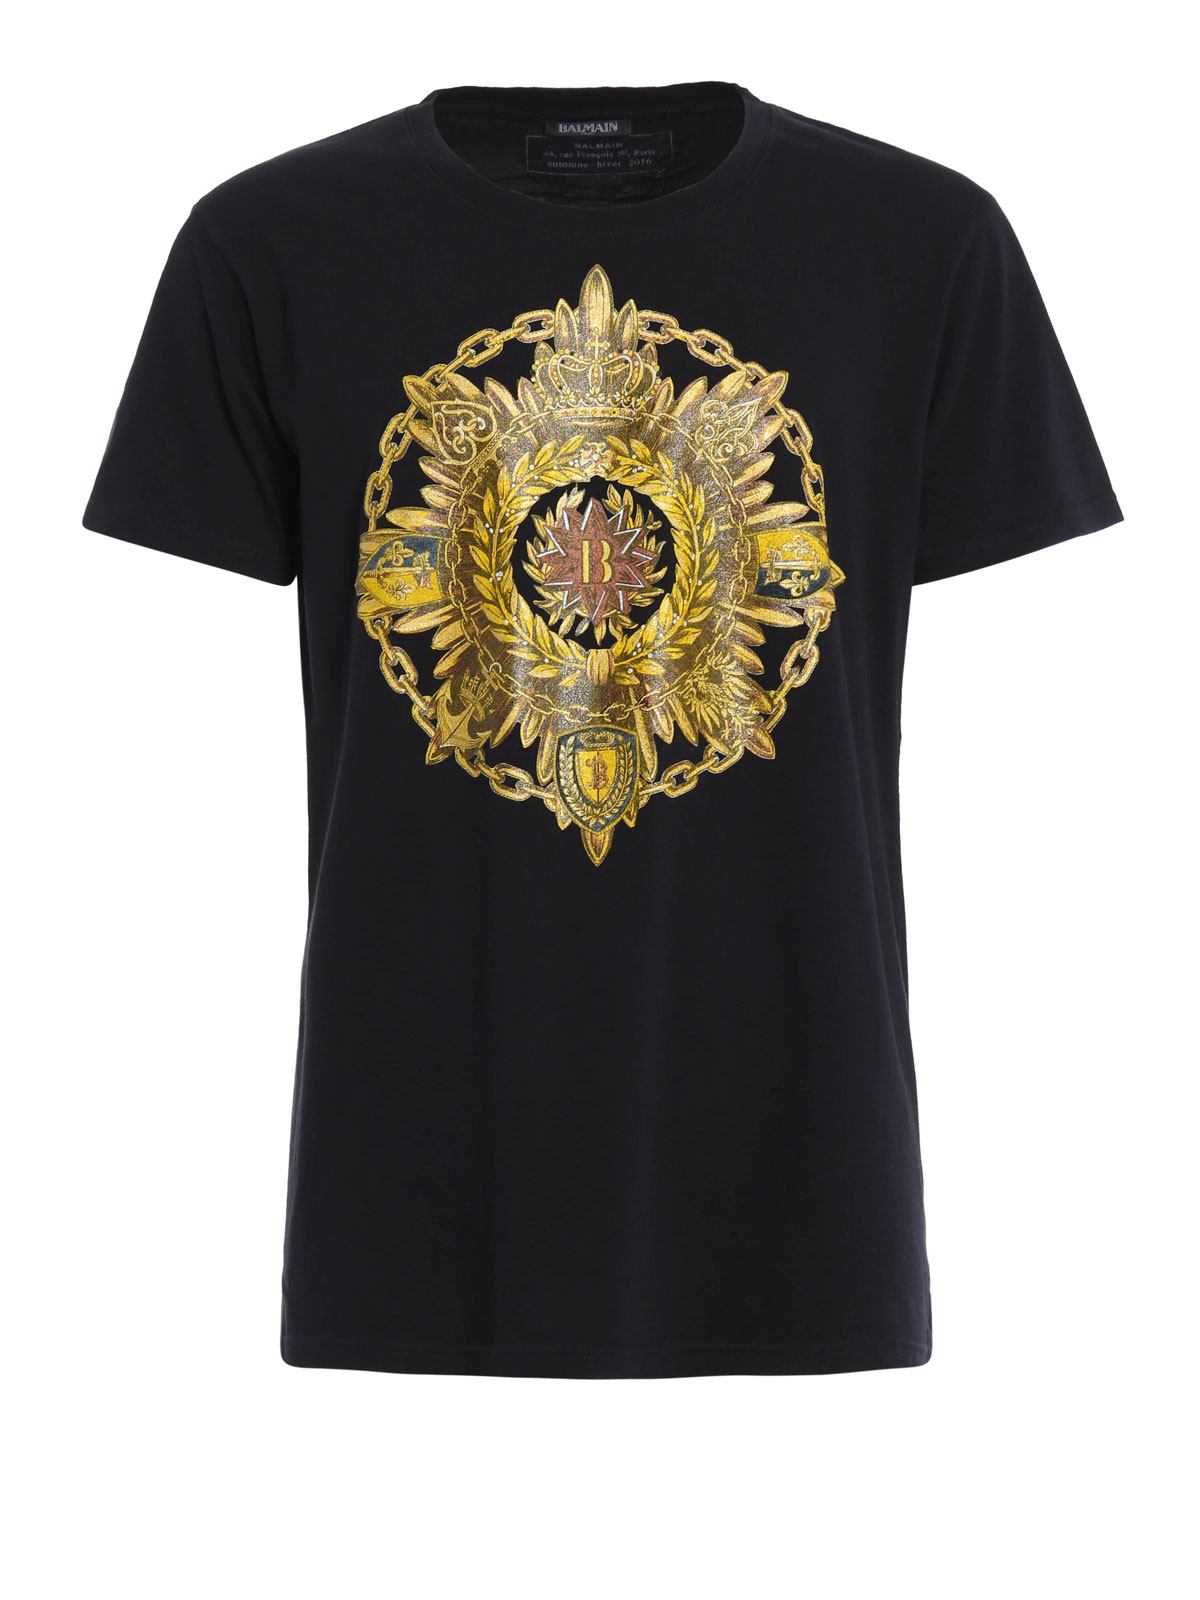 medal printed cotton tee by balmain t shirts ikrix. Black Bedroom Furniture Sets. Home Design Ideas